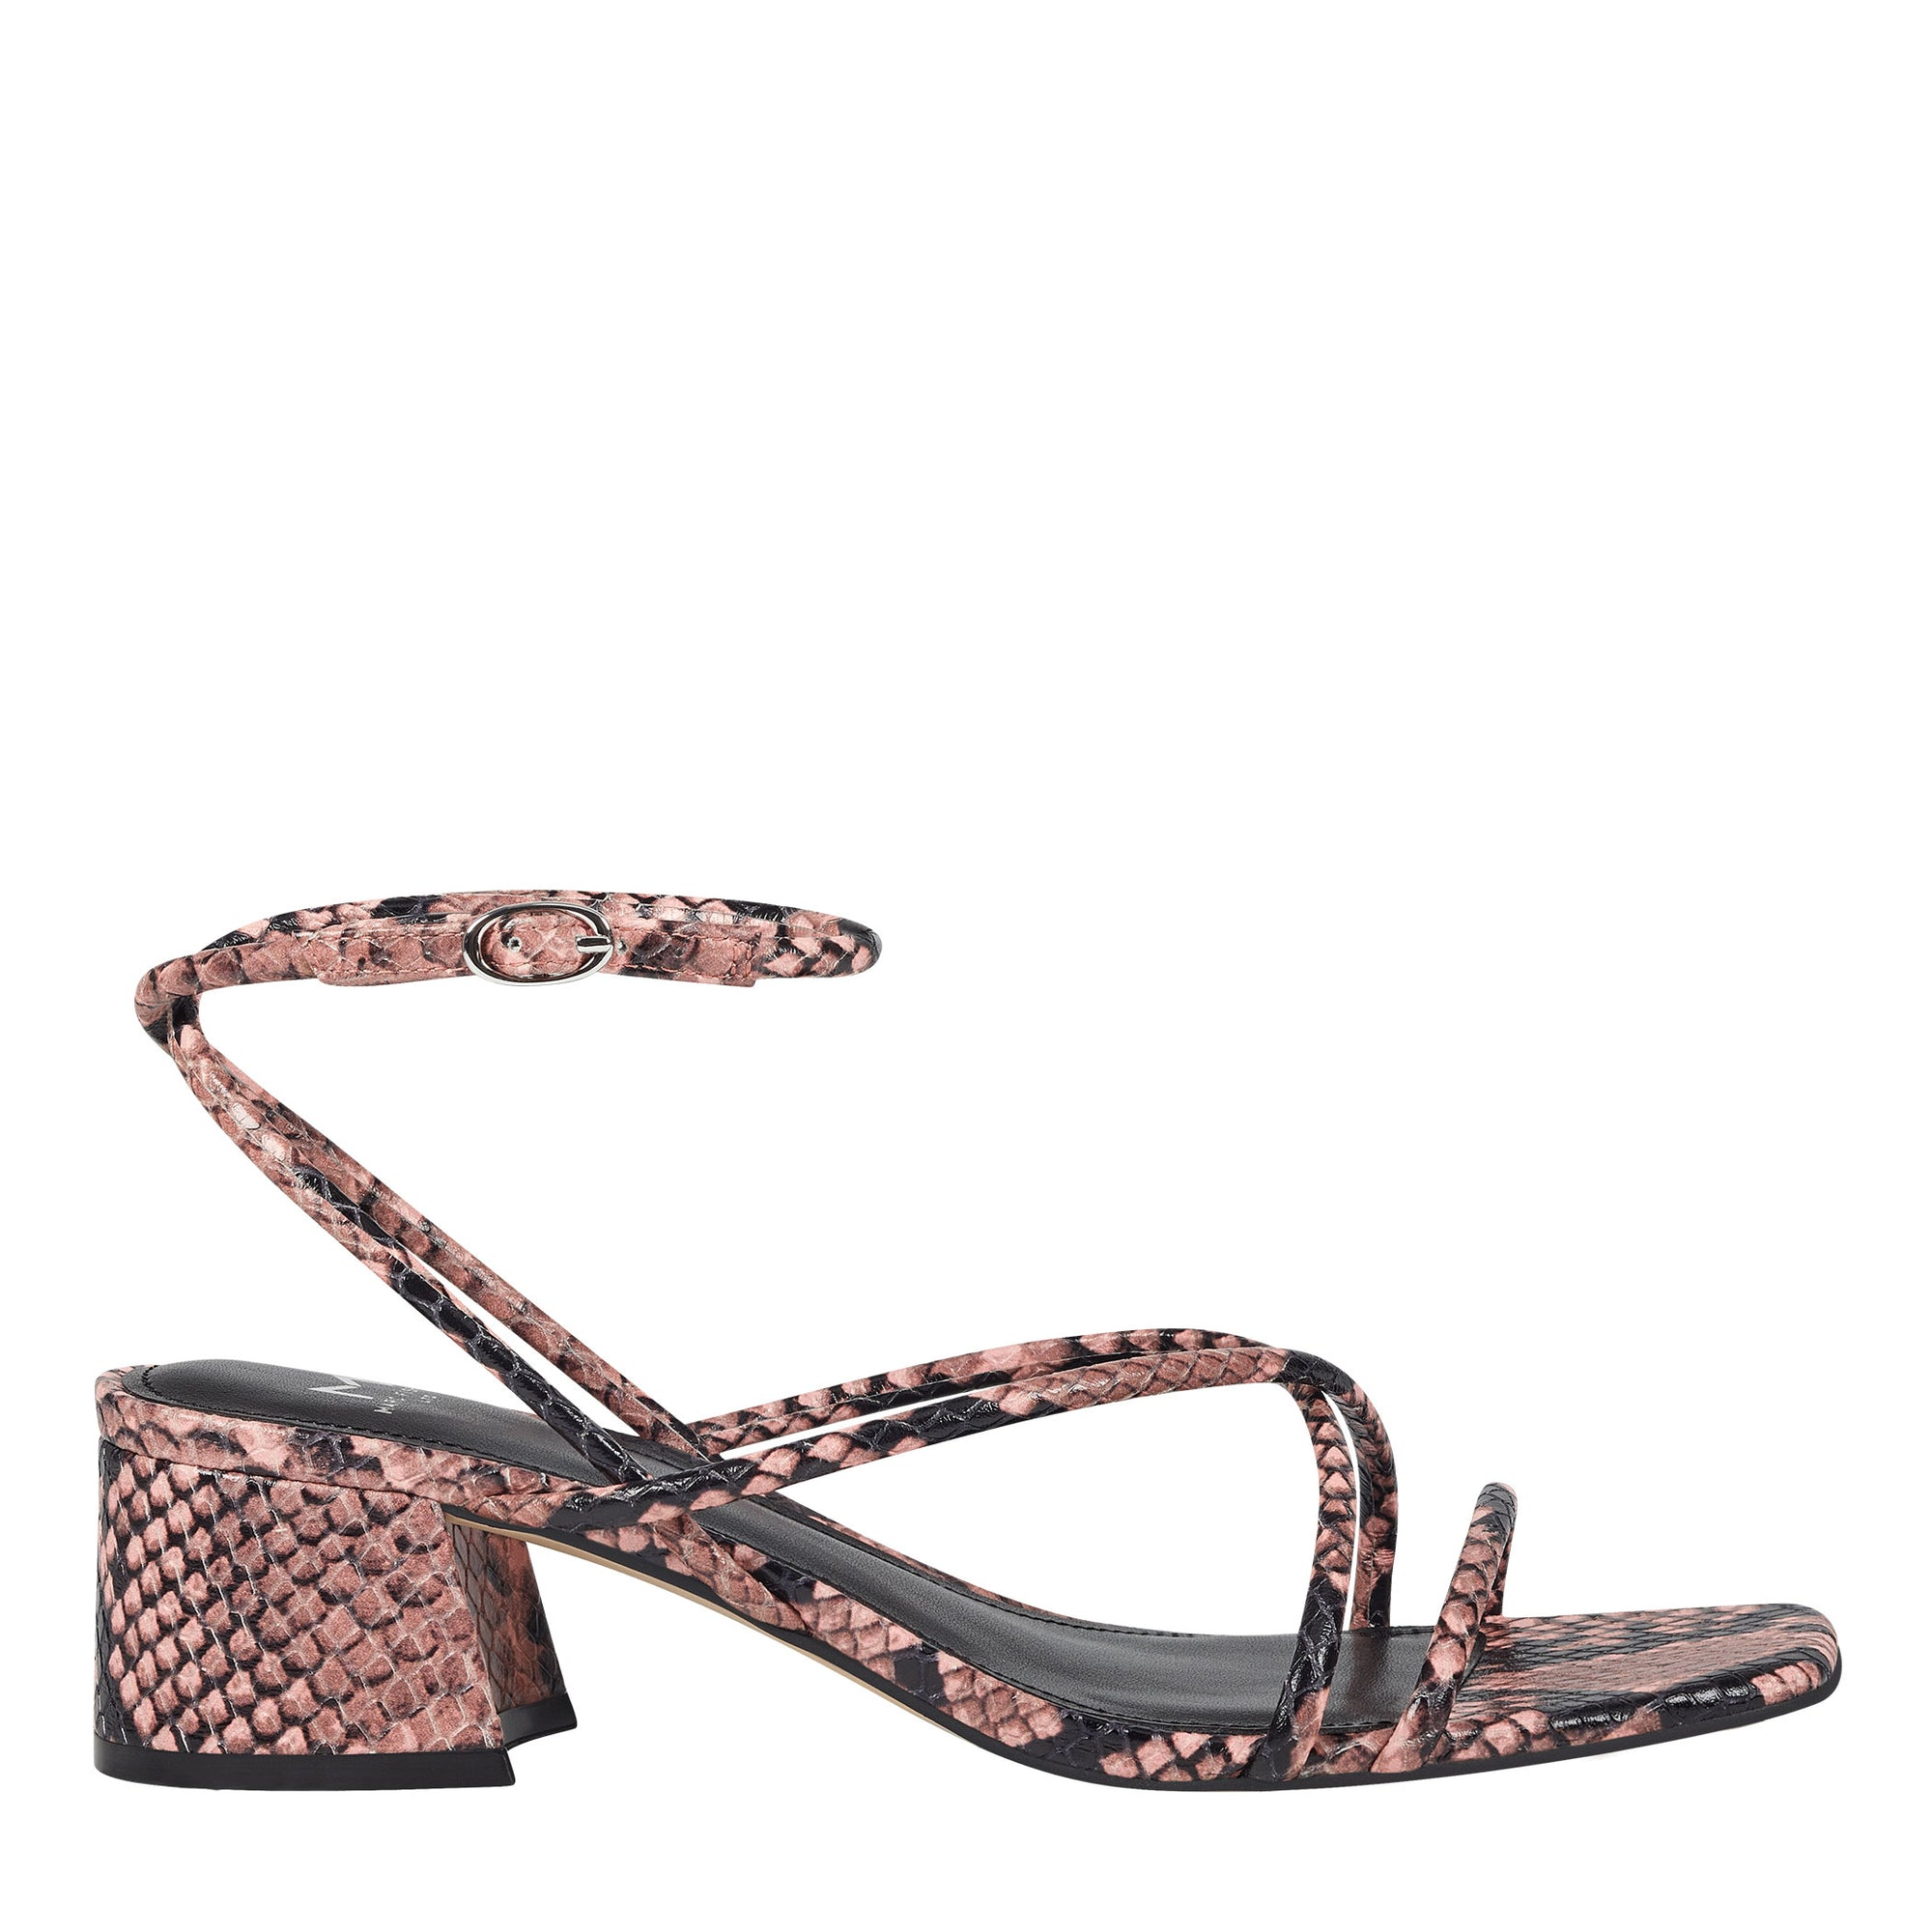 jared-block-heel-strappy-sandal-in-pink-snake-printed-leather